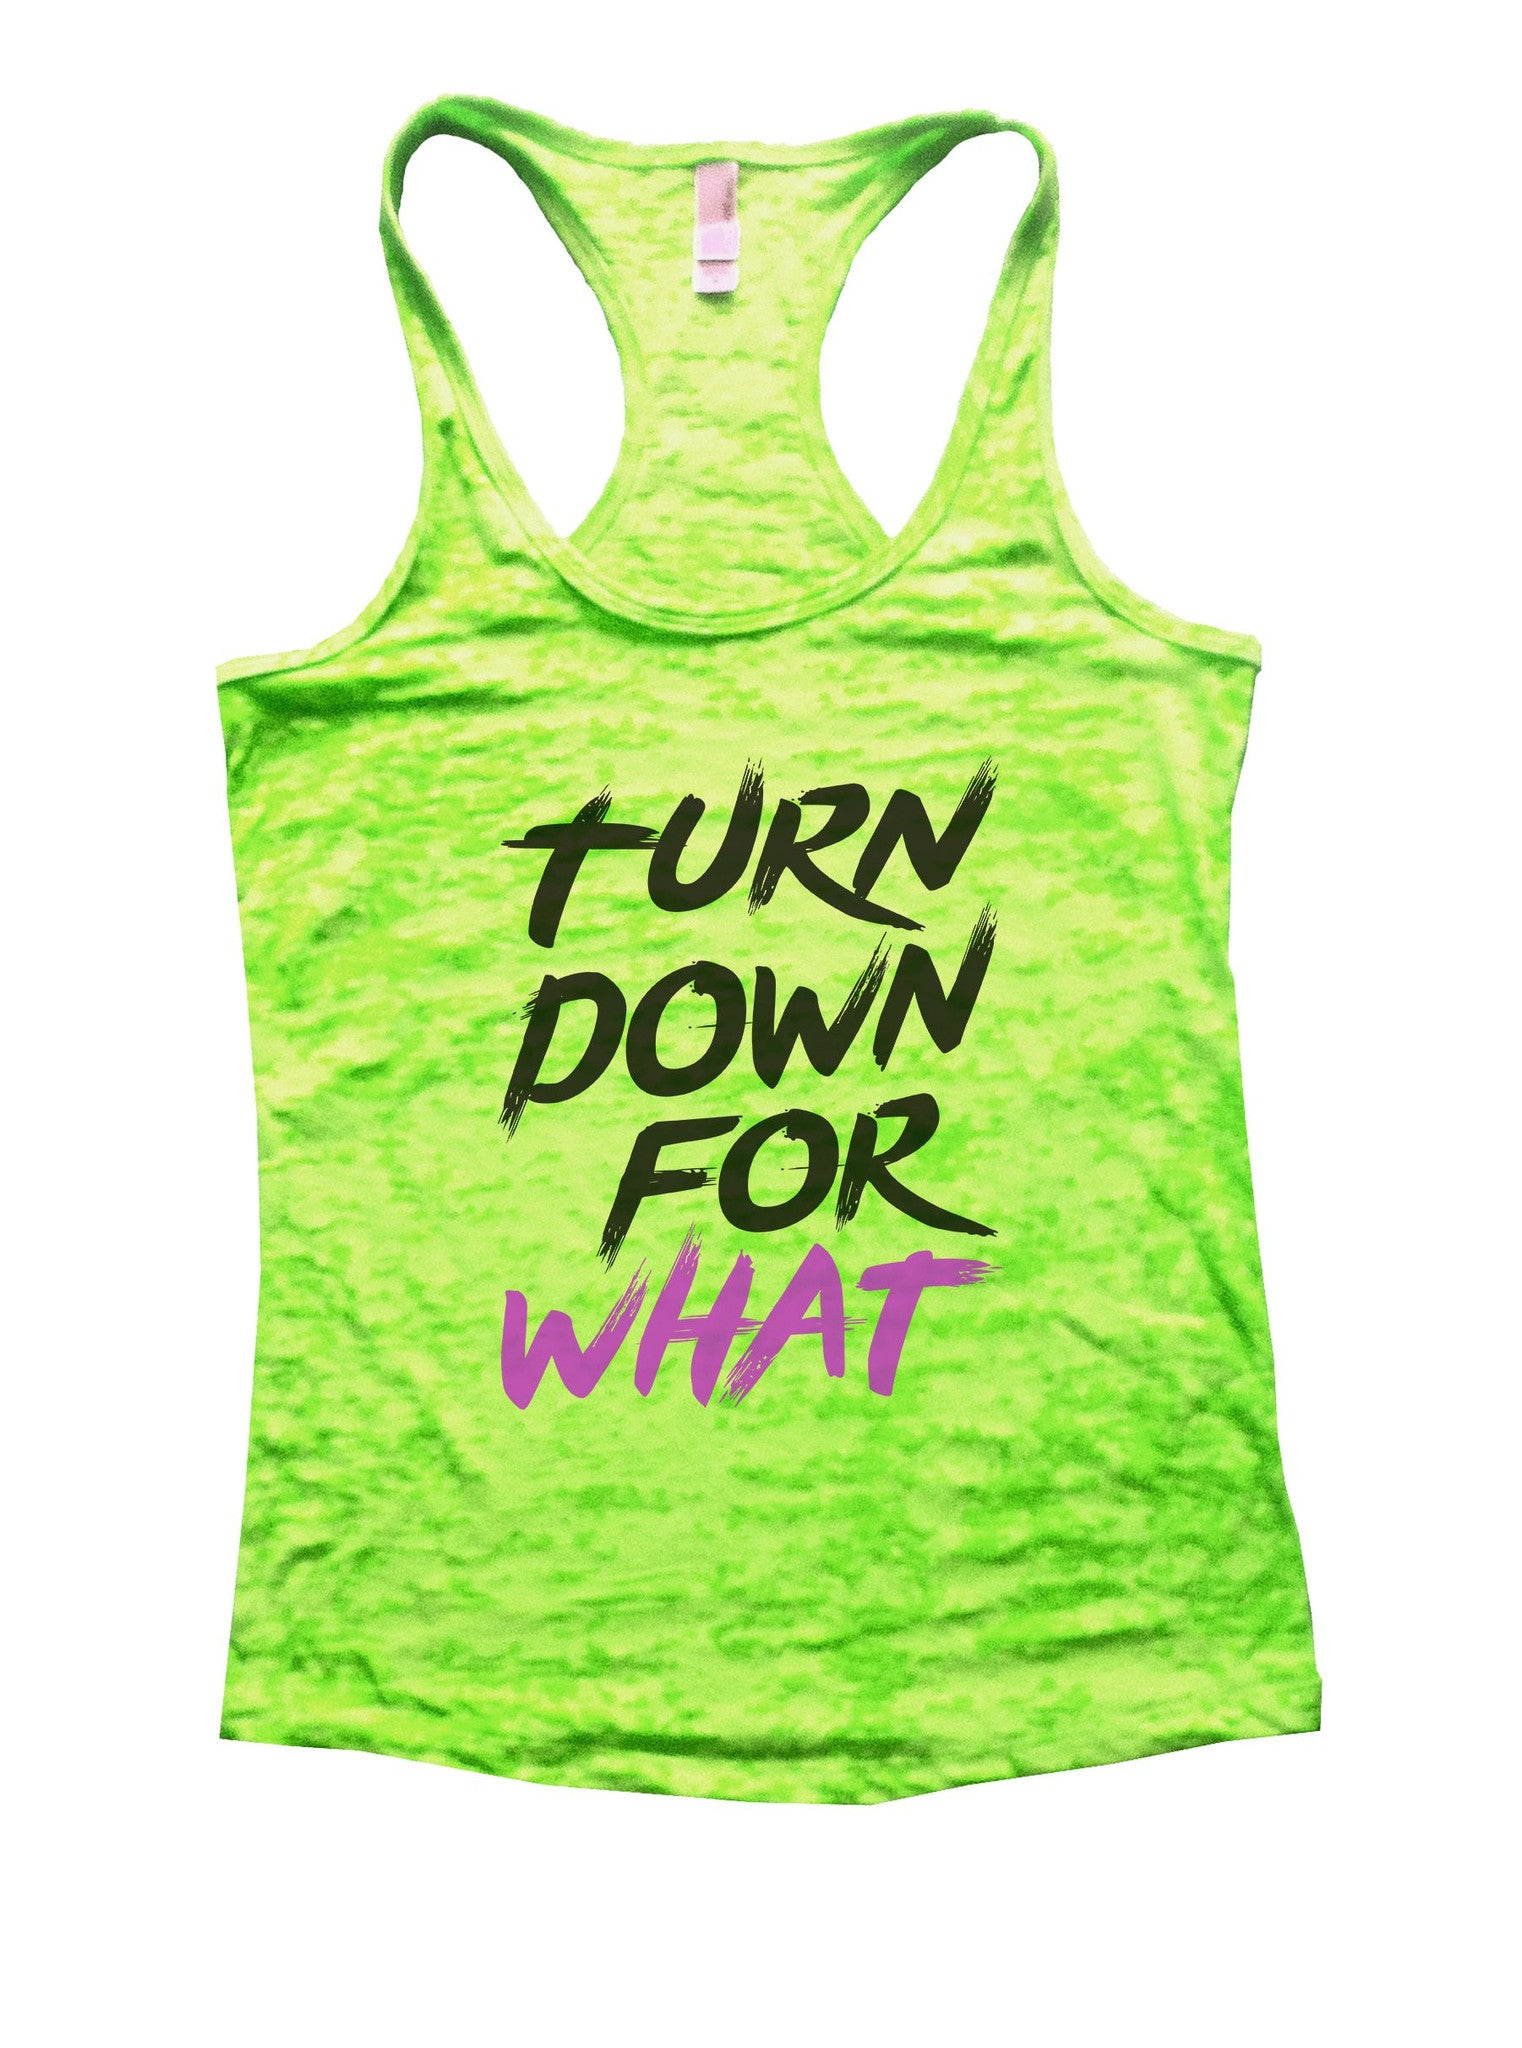 Turn Down For What Burnout Tank Top By BurnoutTankTops.com - 1126 - Funny Shirts Tank Tops Burnouts and Triblends  - 2